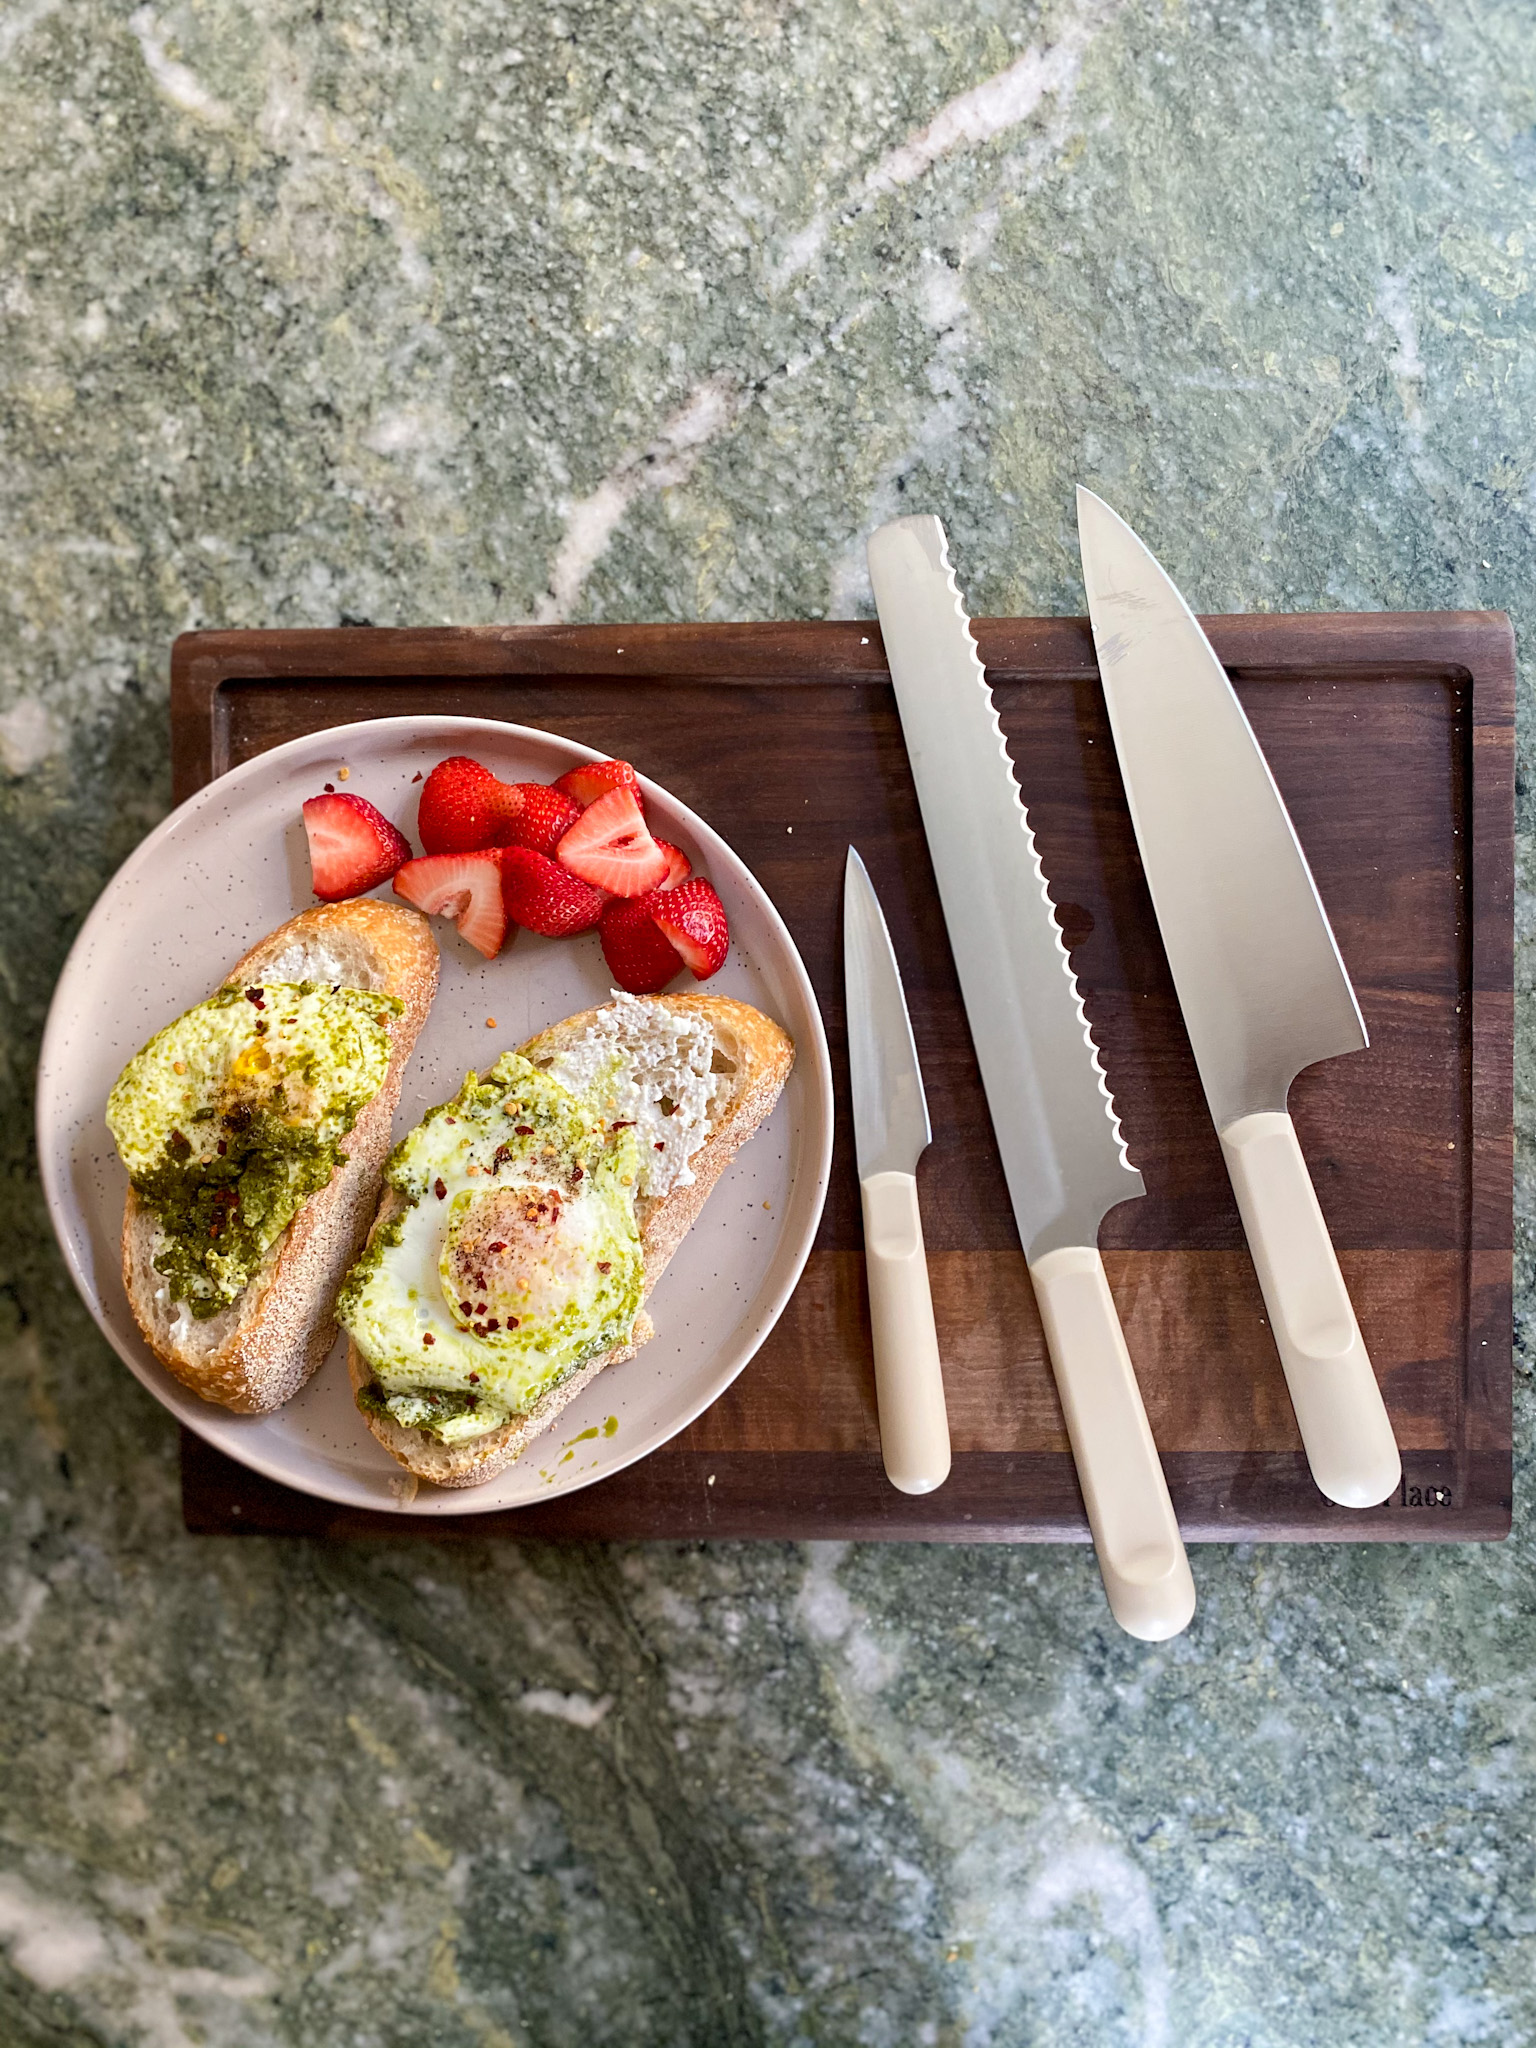 Our Place Knives Review on a chopping board and plate with food